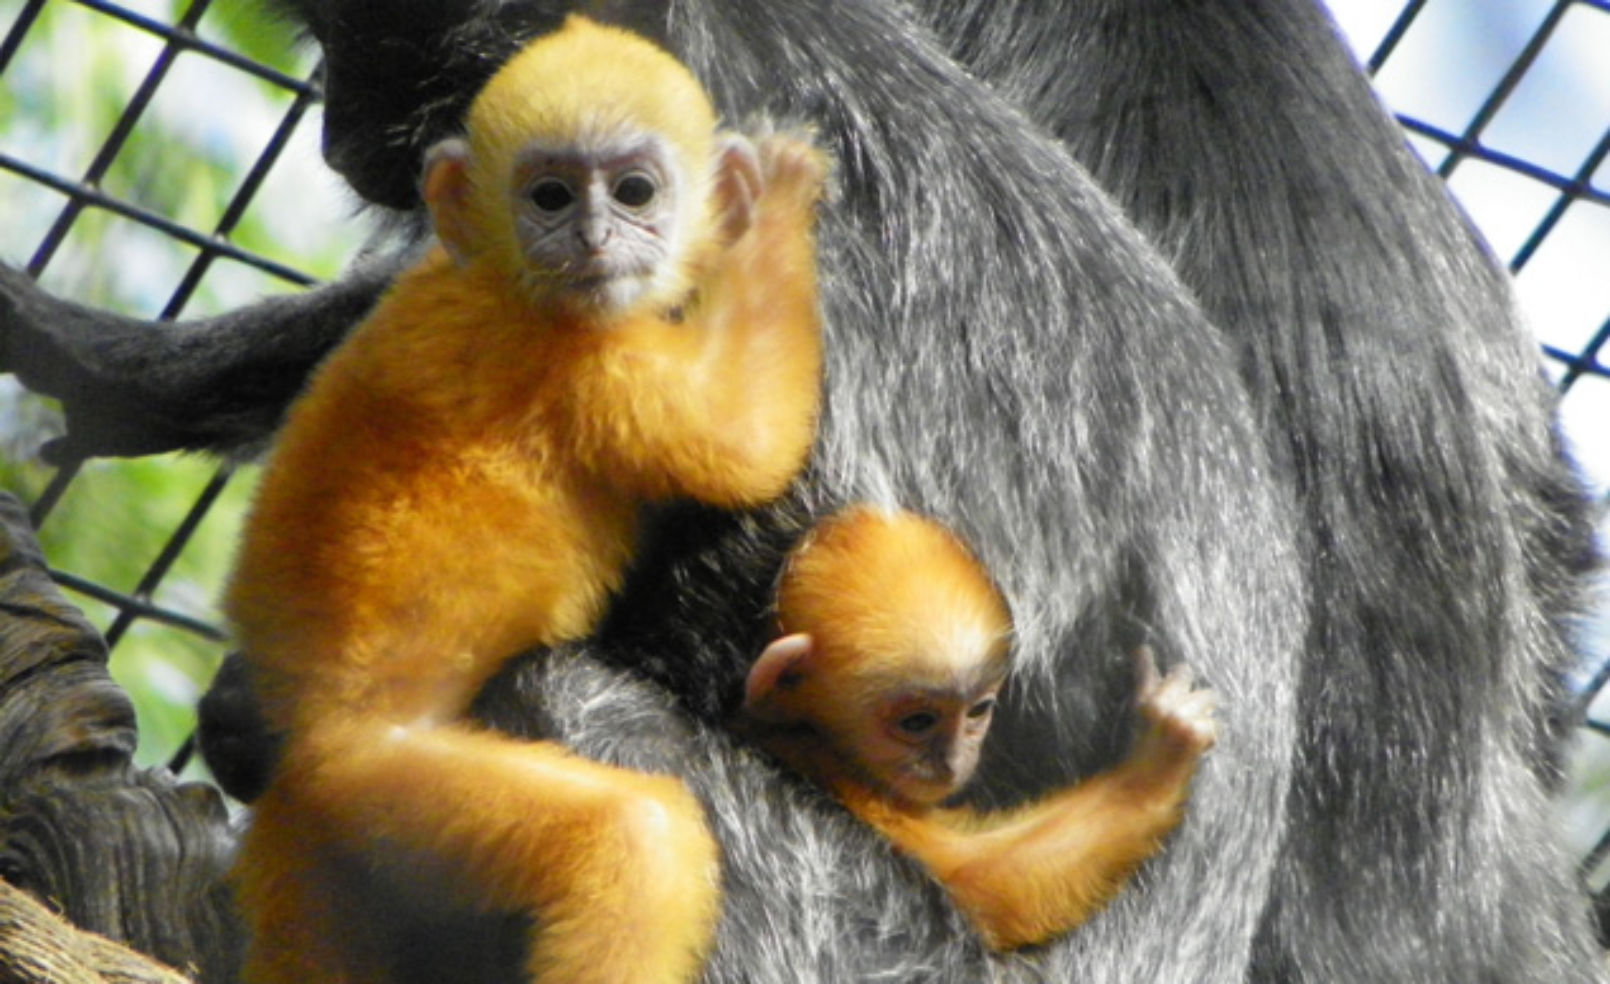 Adorable Zoo Animals You MUST See!